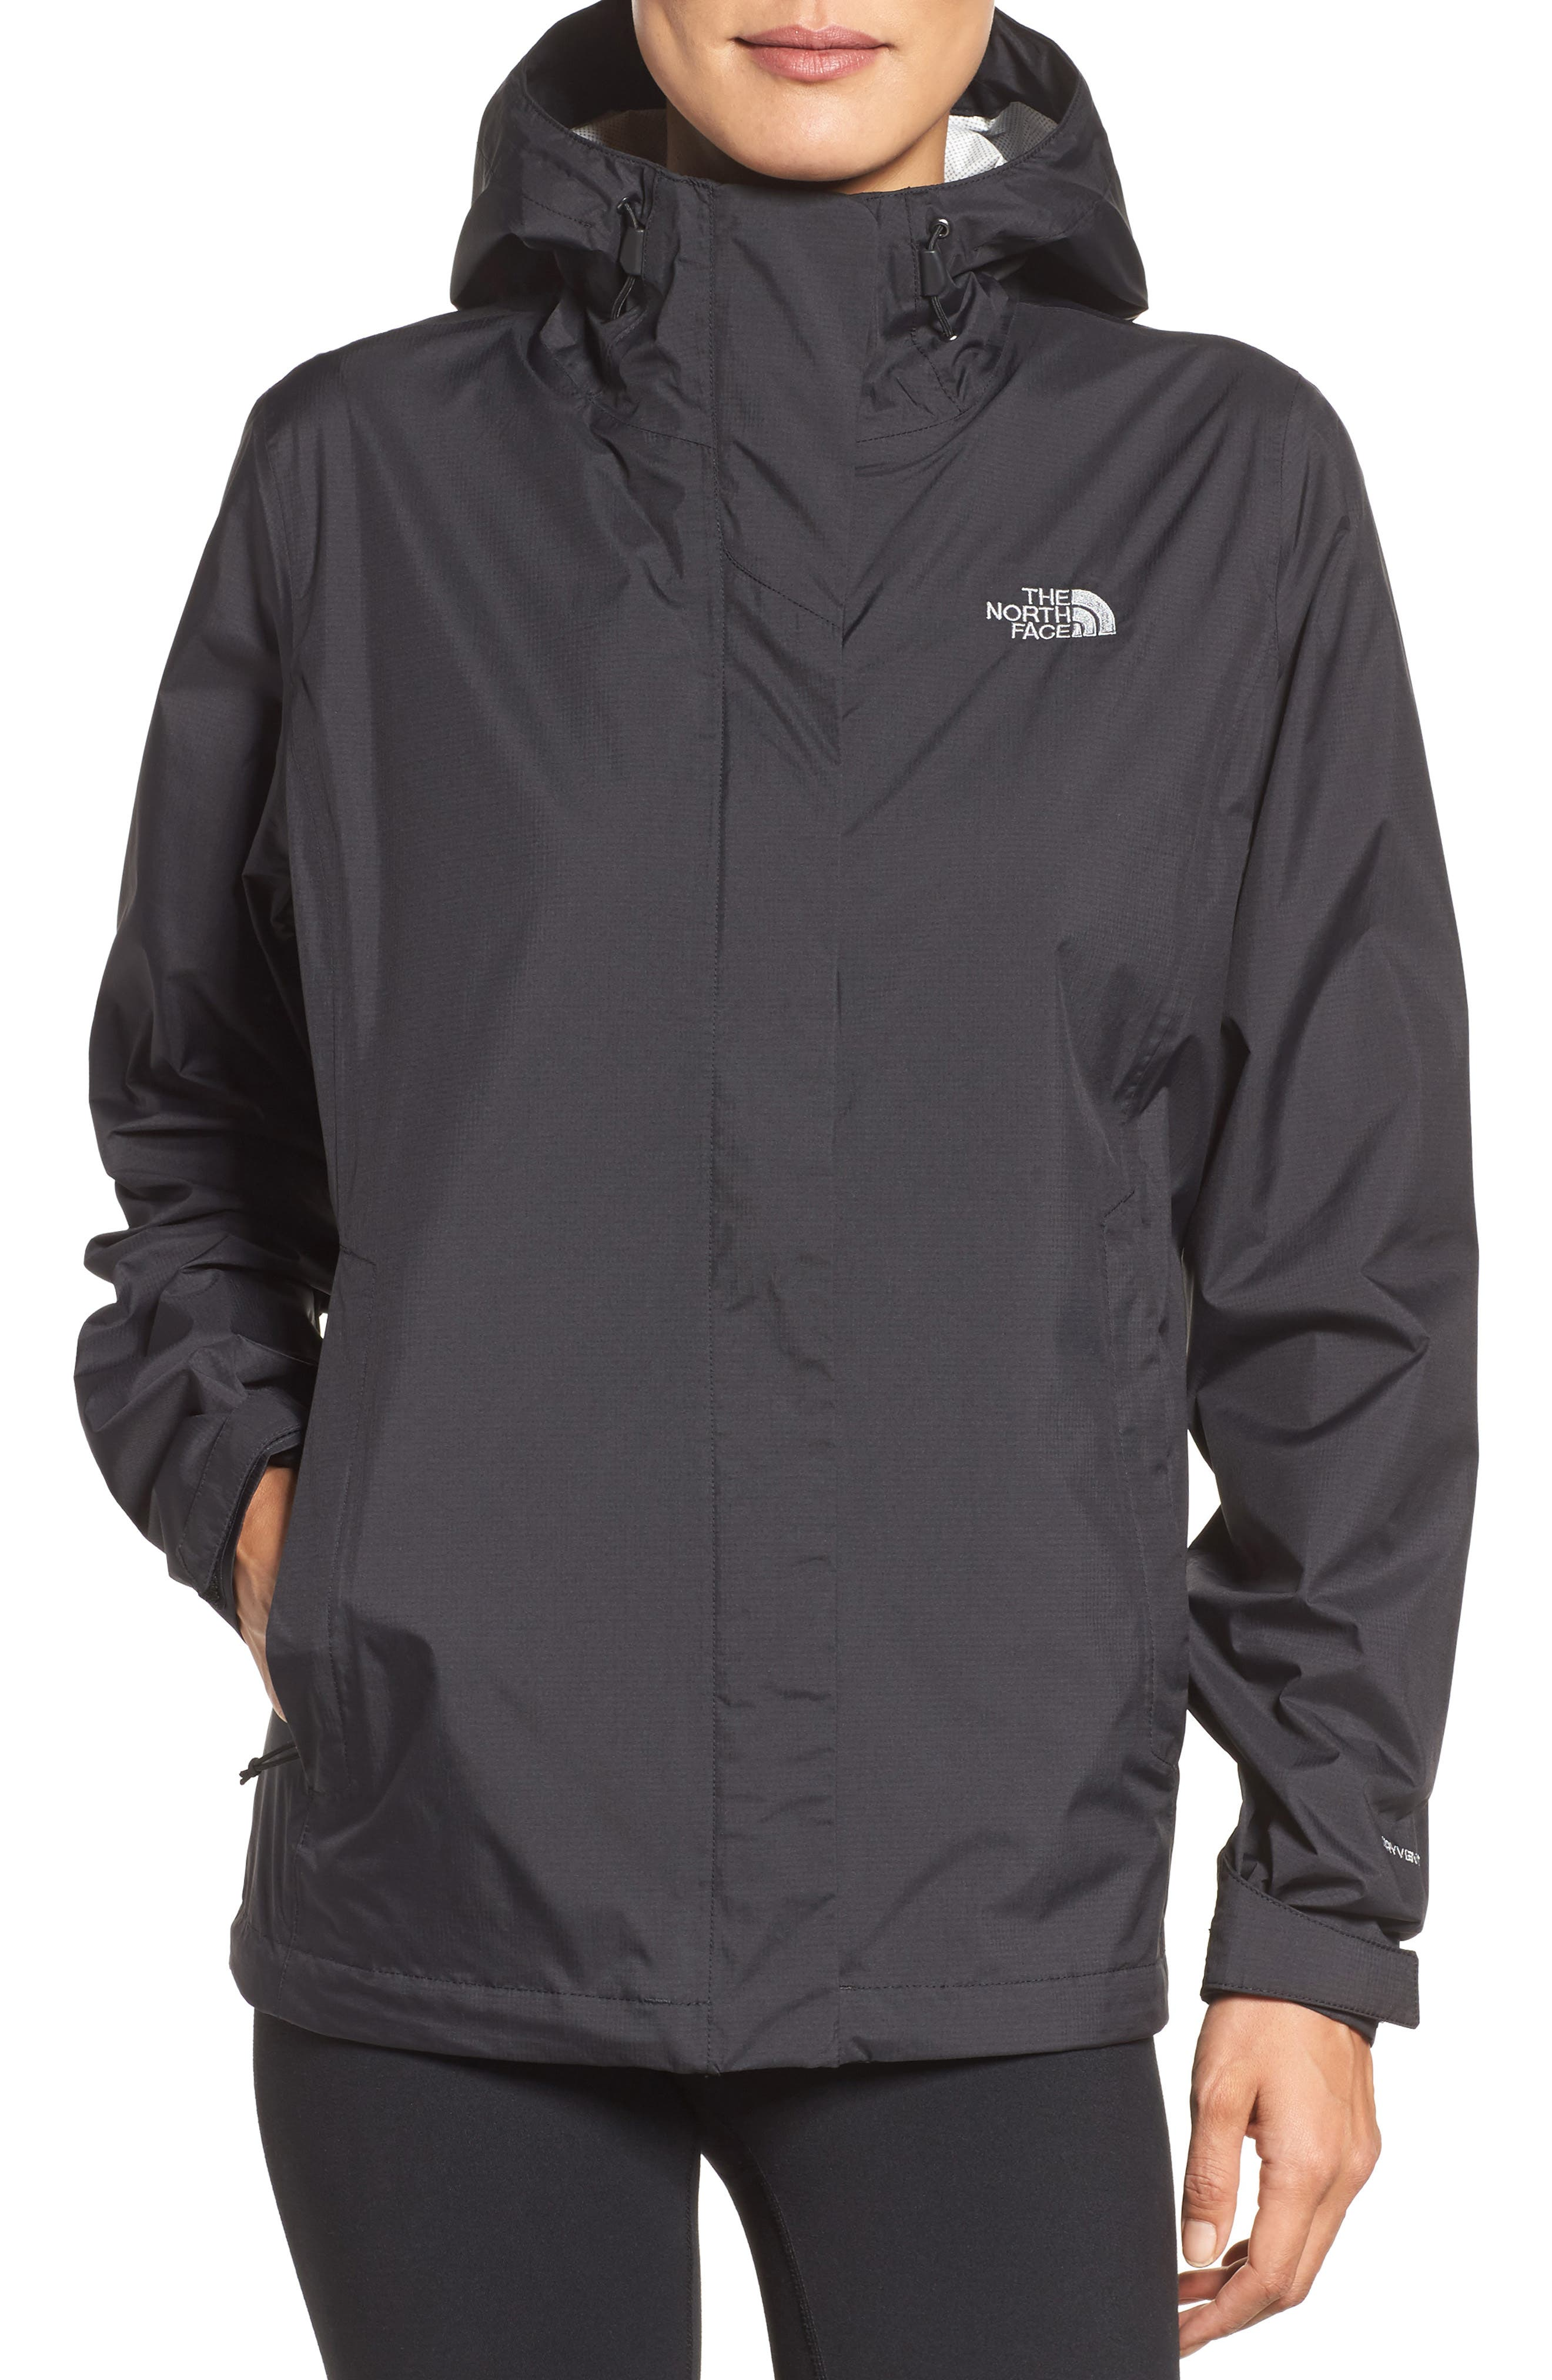 Veste north face homme occasion